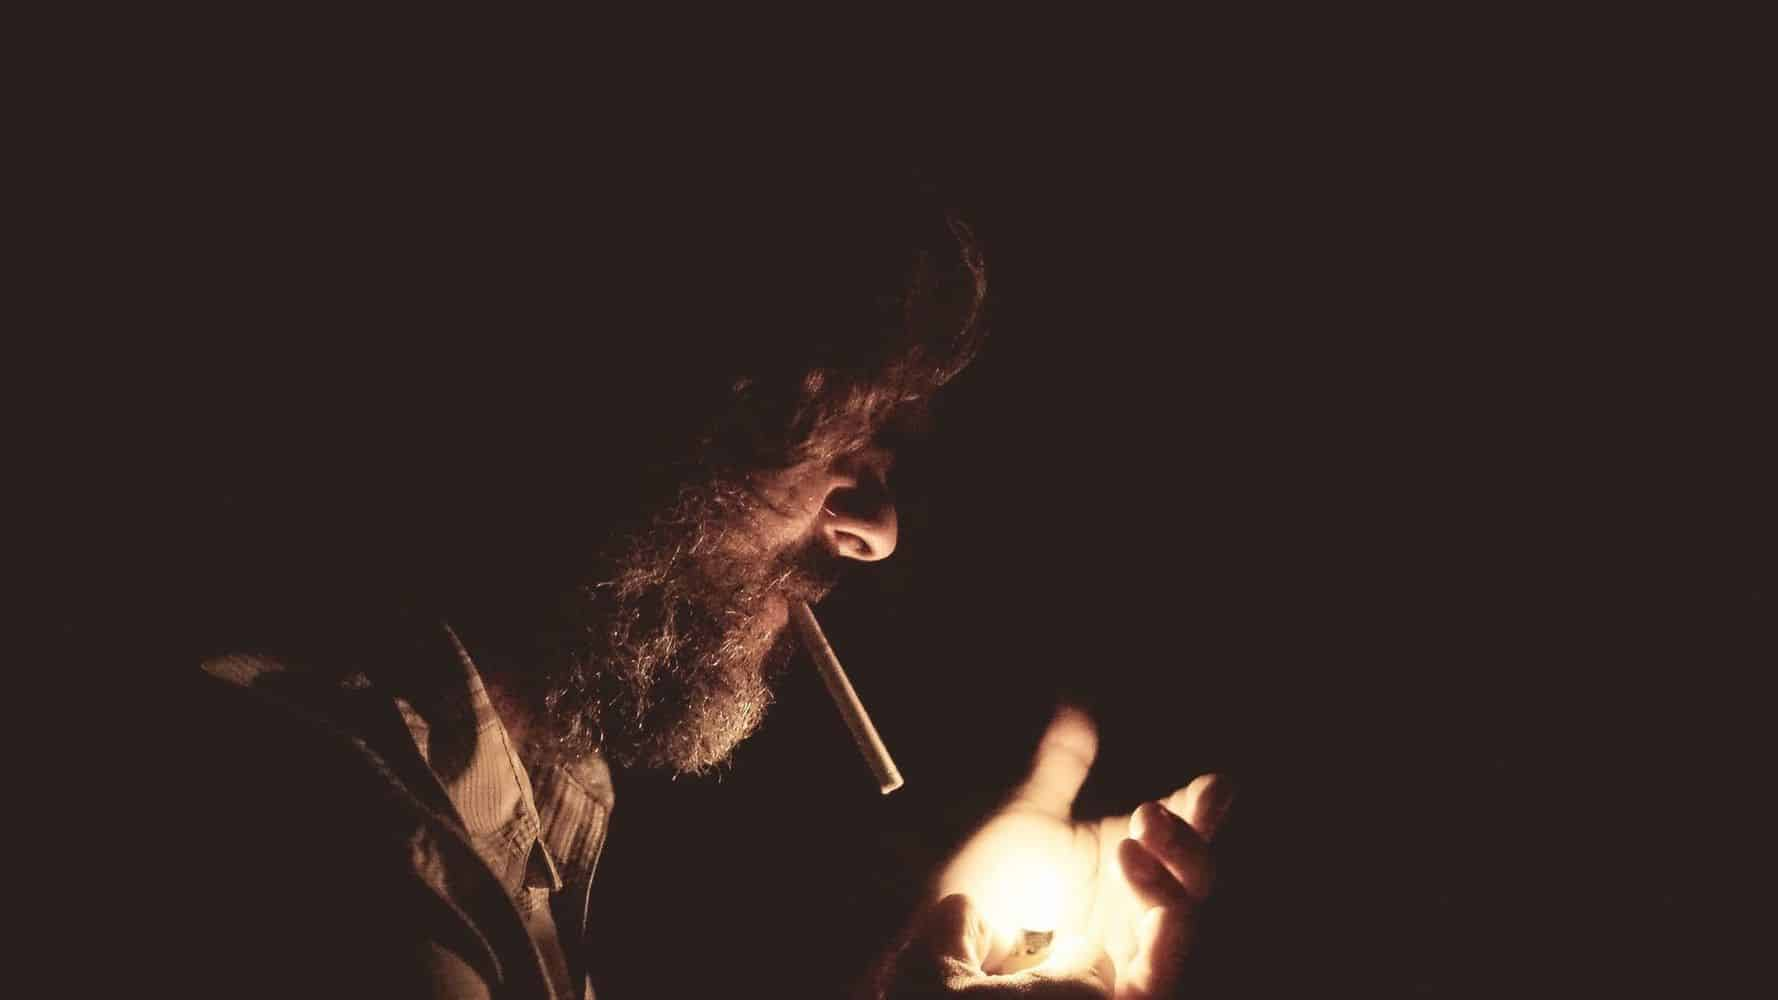 A person lighting a cigarette in the dark.